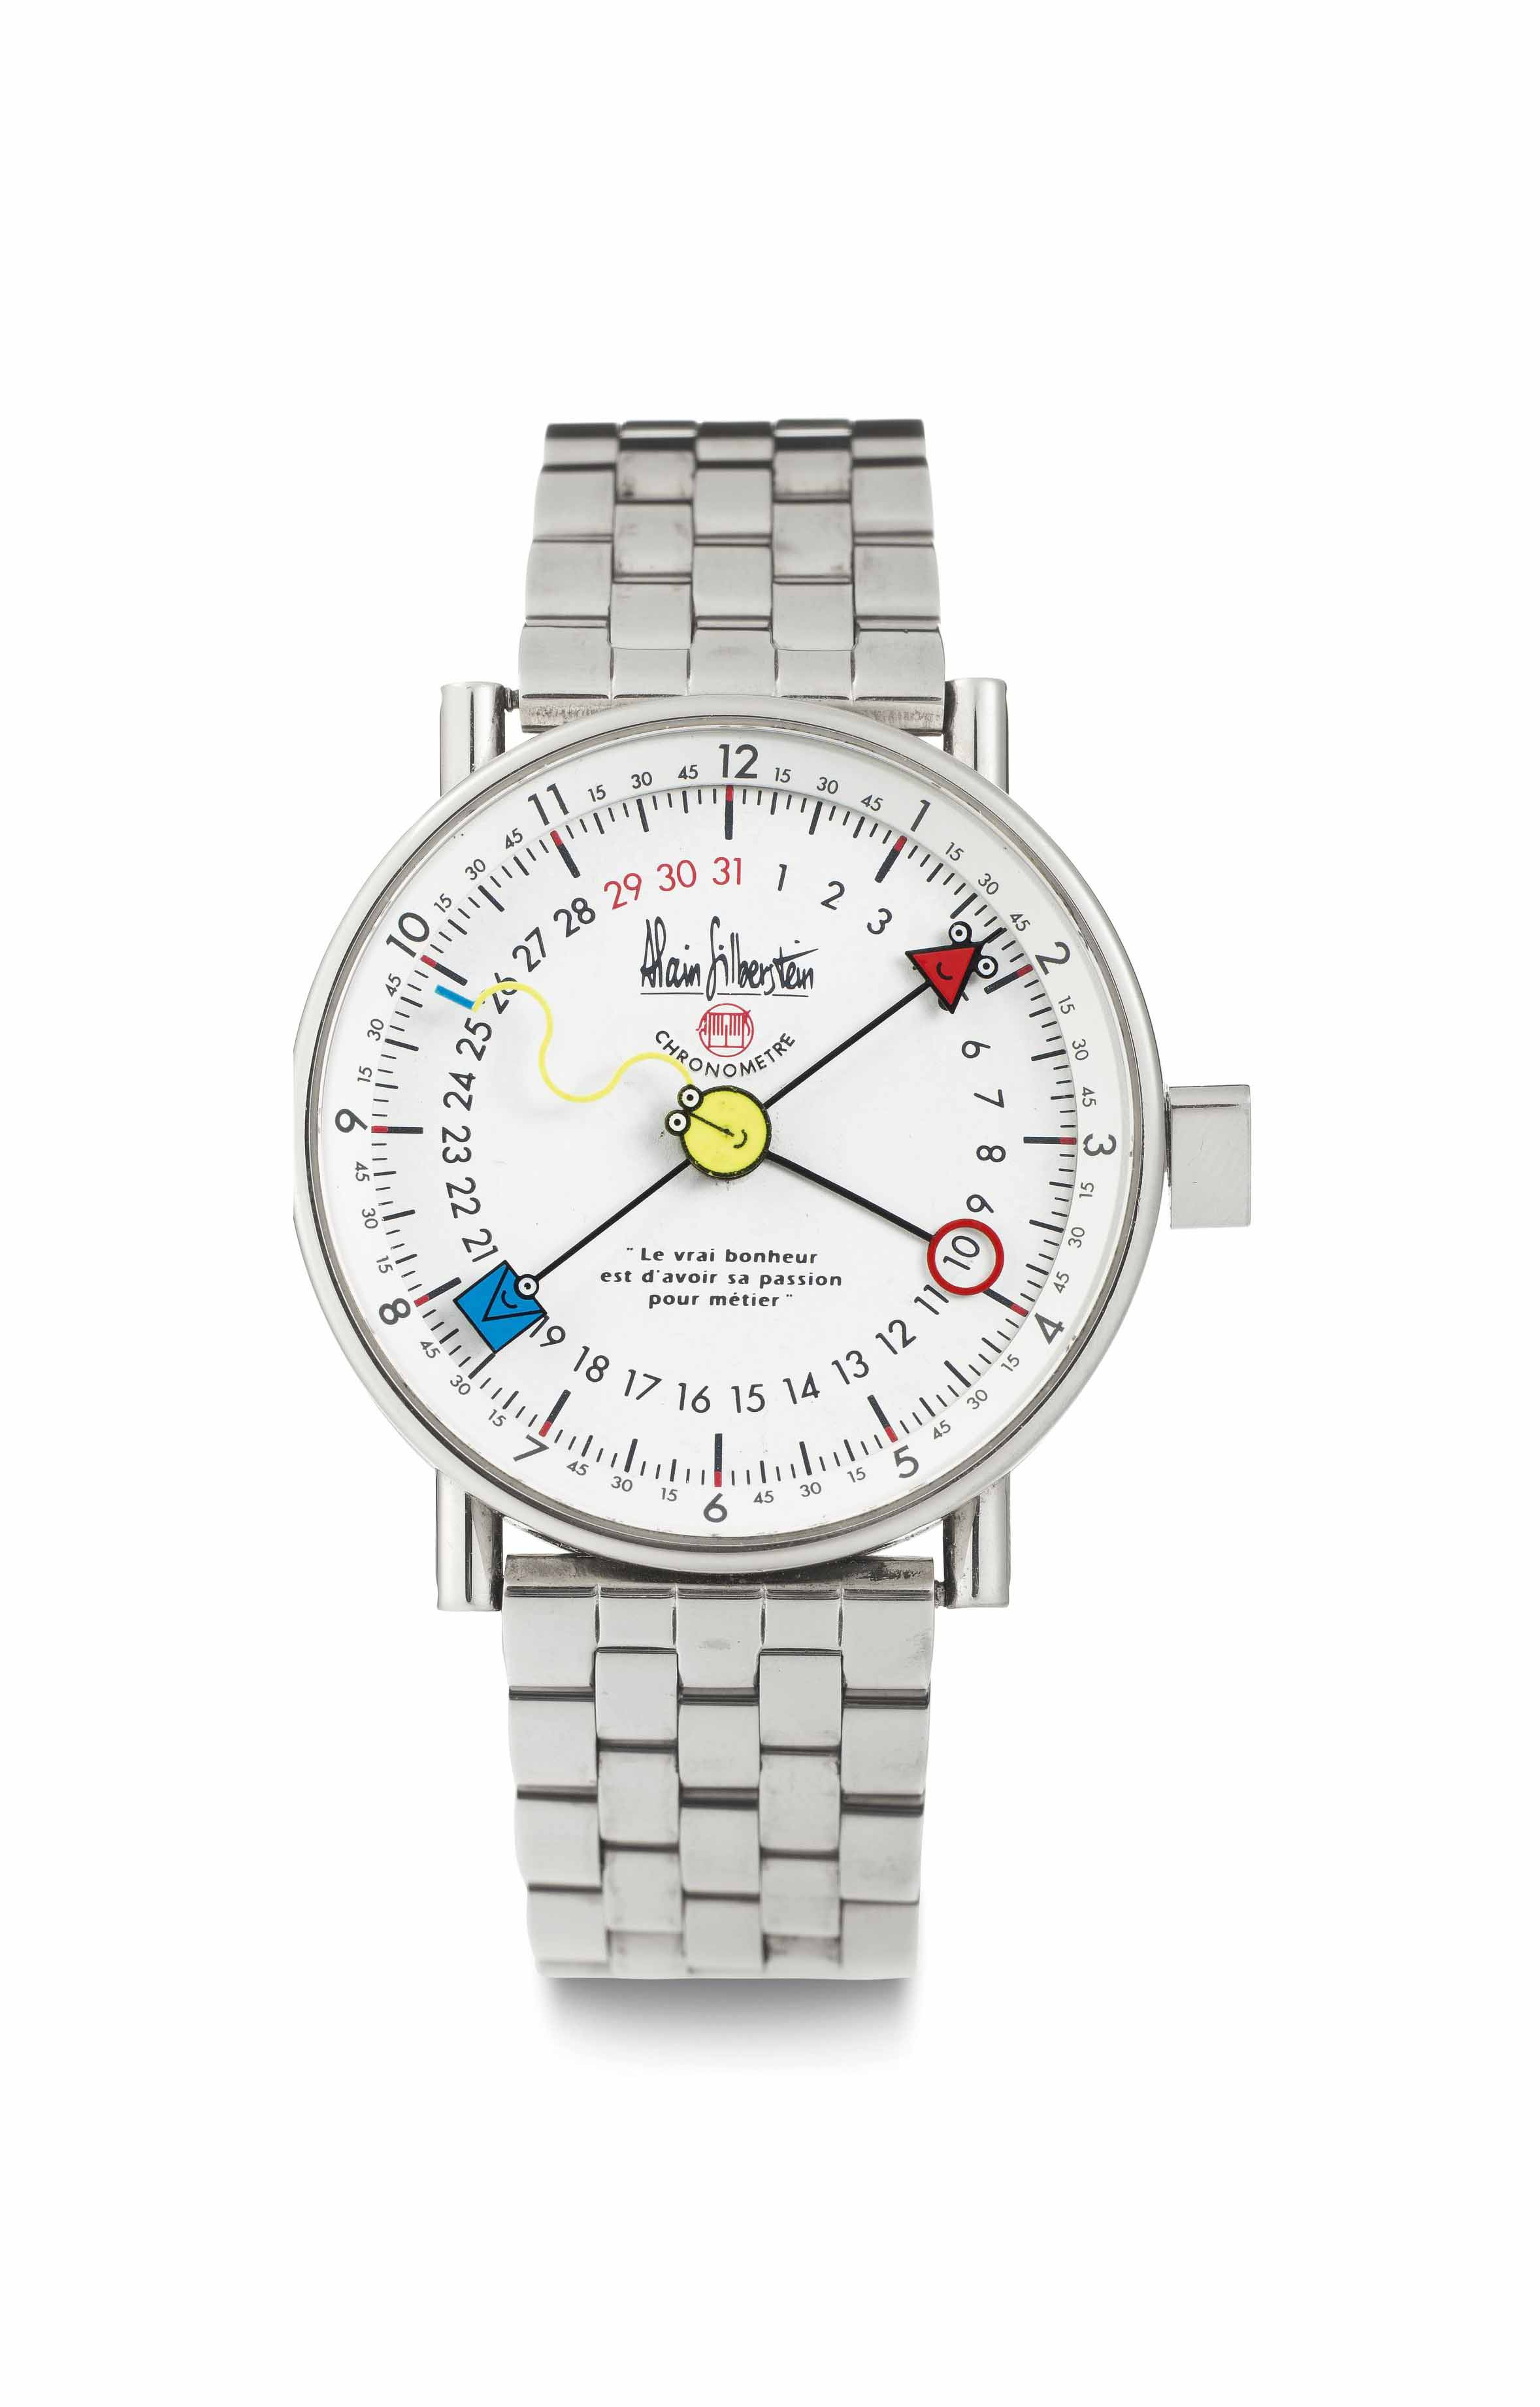 Alain Silberstein. A Limited Edition Stainless Steel Automatic Perpetual Calendar Single Hand Wristwatch with Bracelet